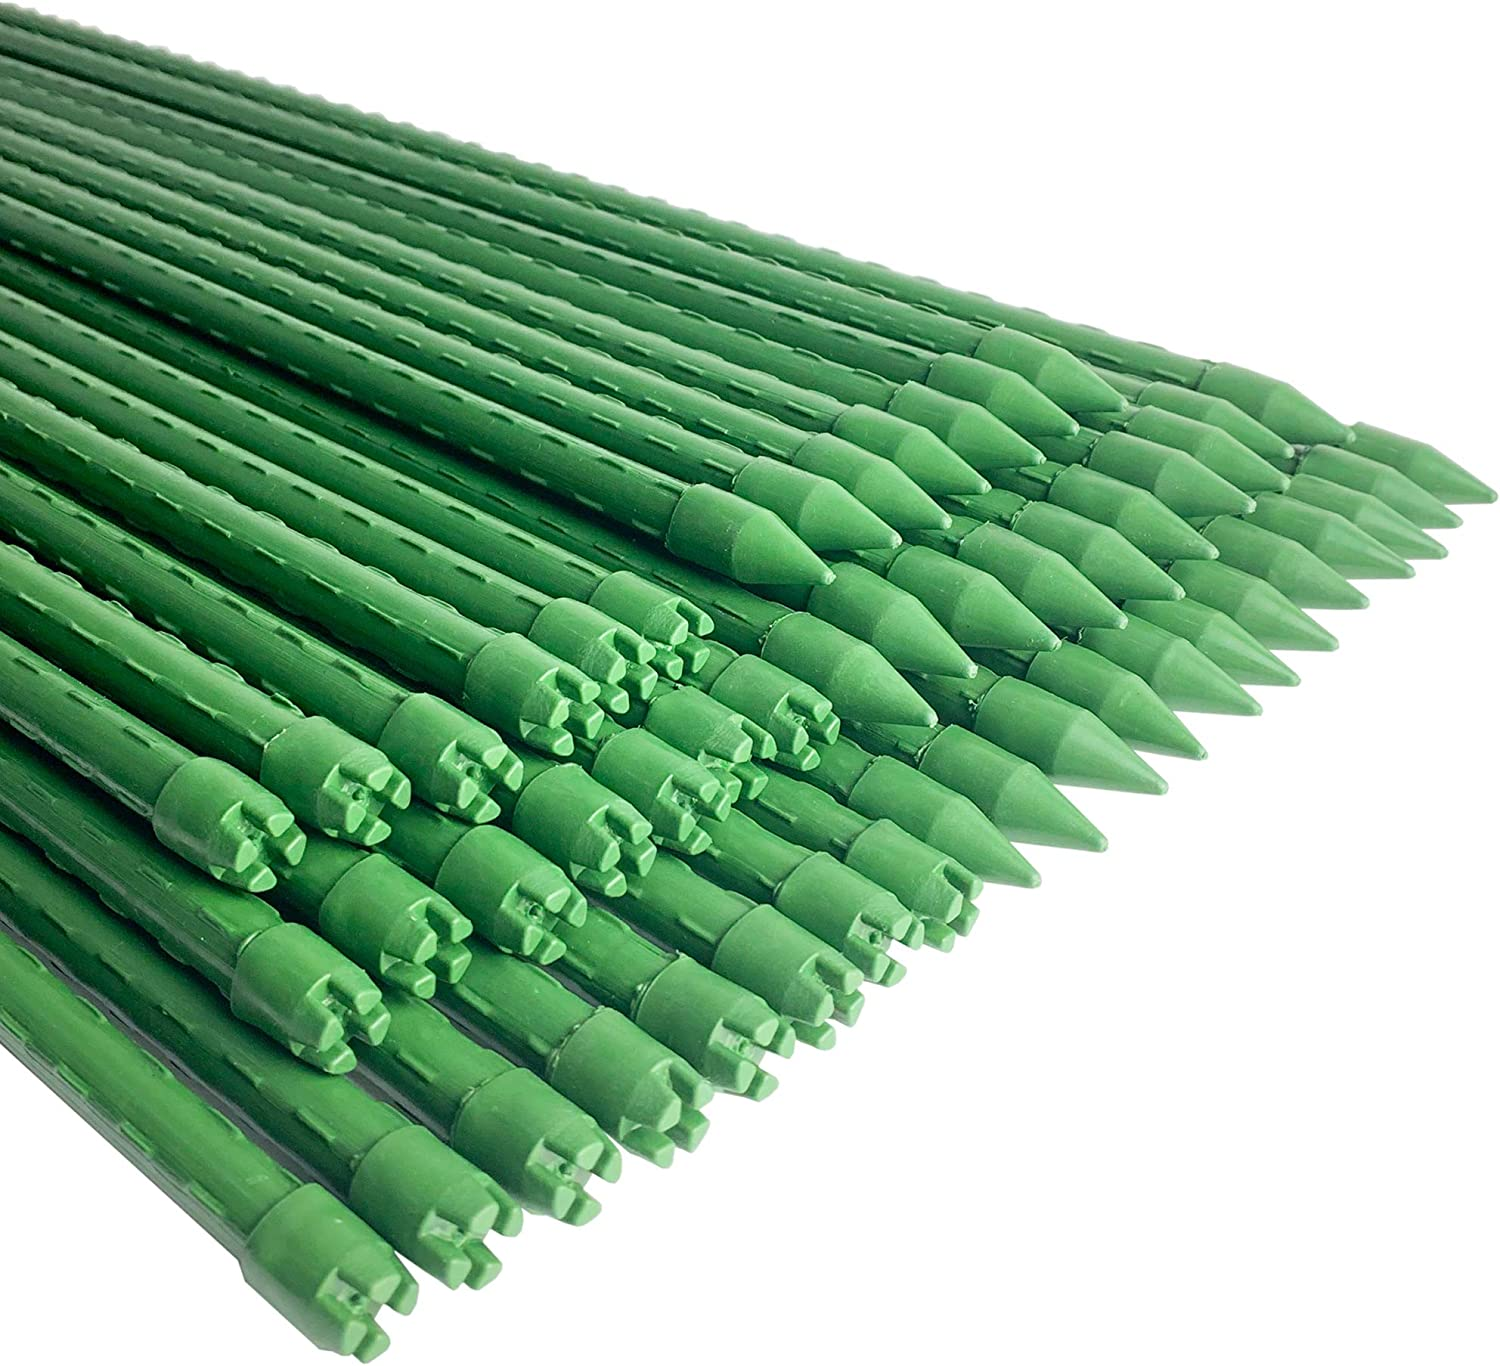 WAENLIR Garden Stakes 48 inch 4ft Sturdy Plant Sticks/Support, Tomato Stakes, Pack of 50